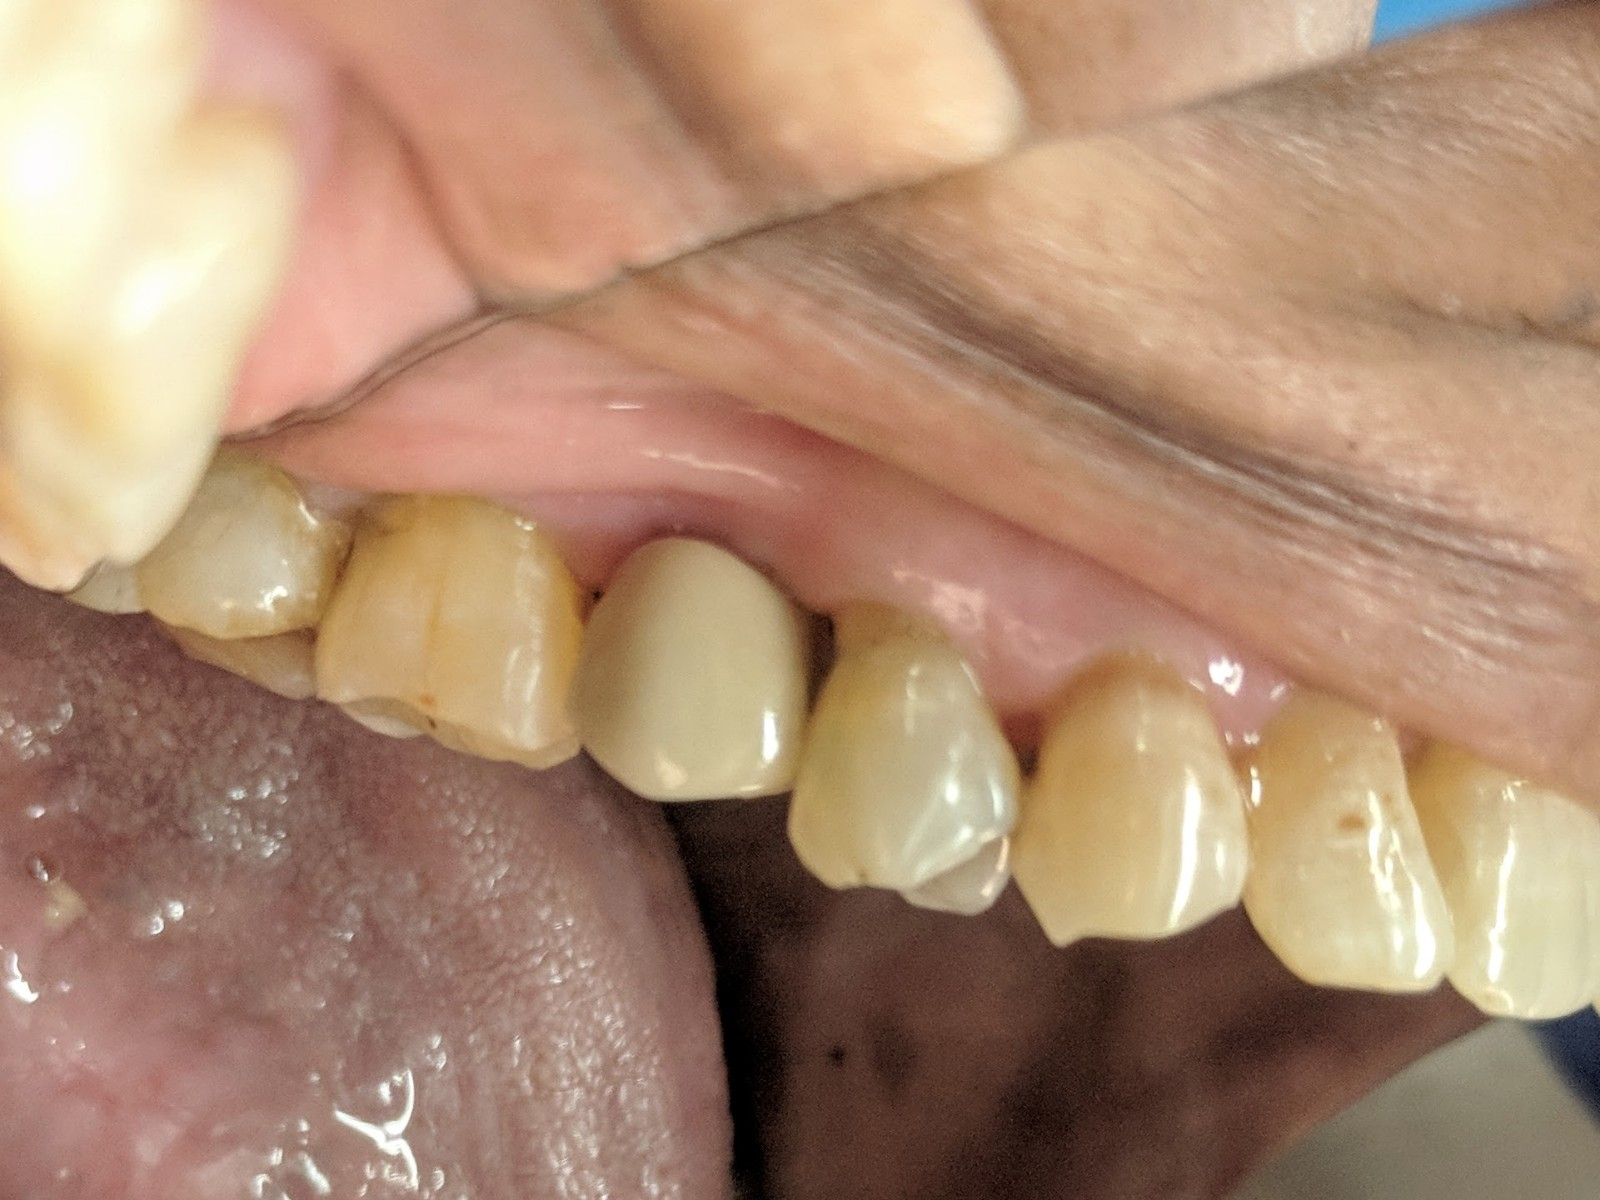 ceramic-crowns-tooth-implants-mumbai